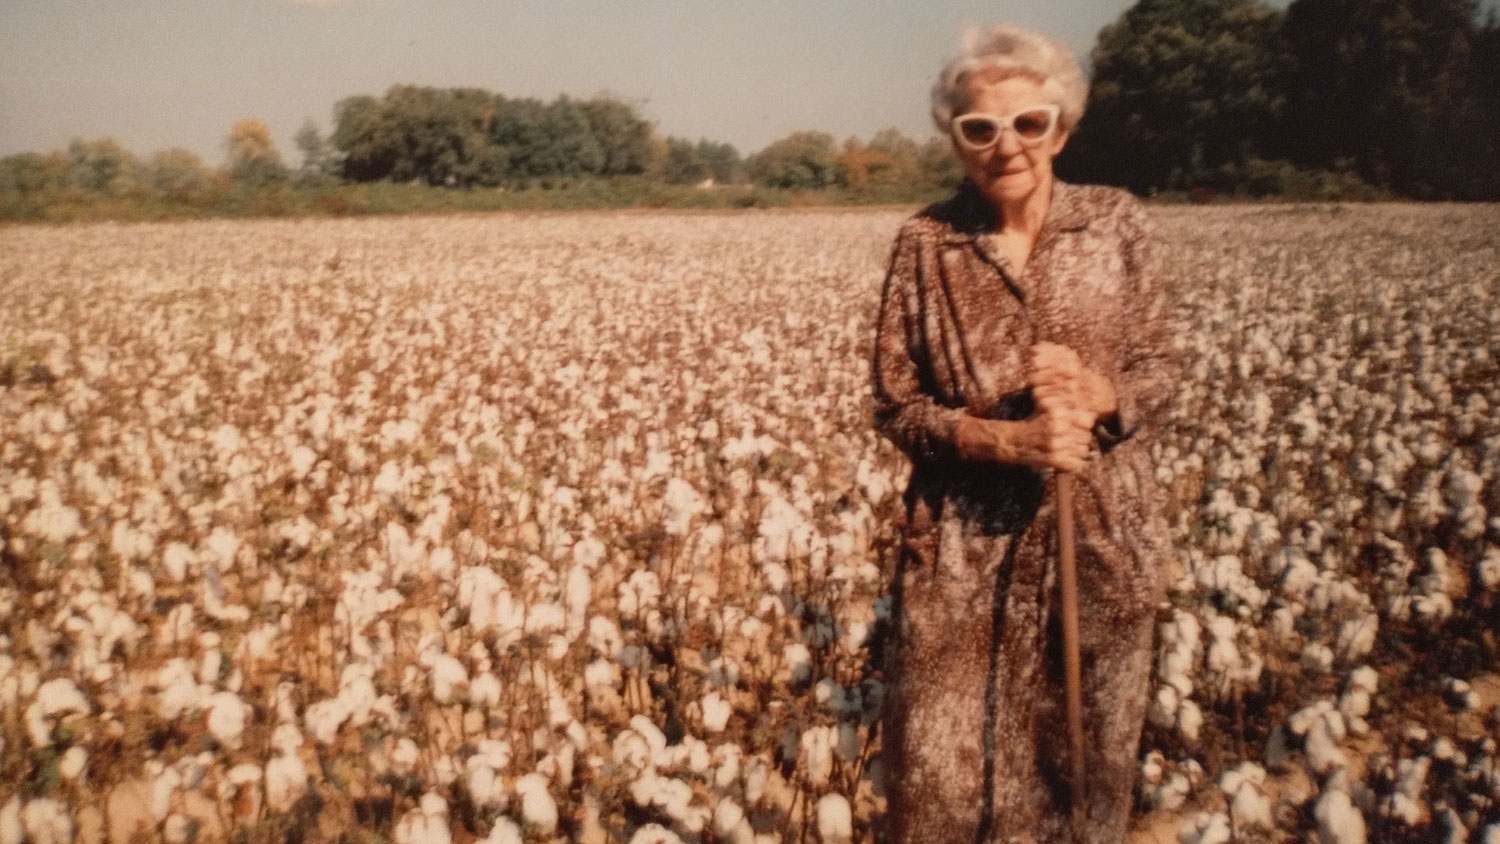 Photo from the 1980s of an older white woman standing in front of a cotton field.